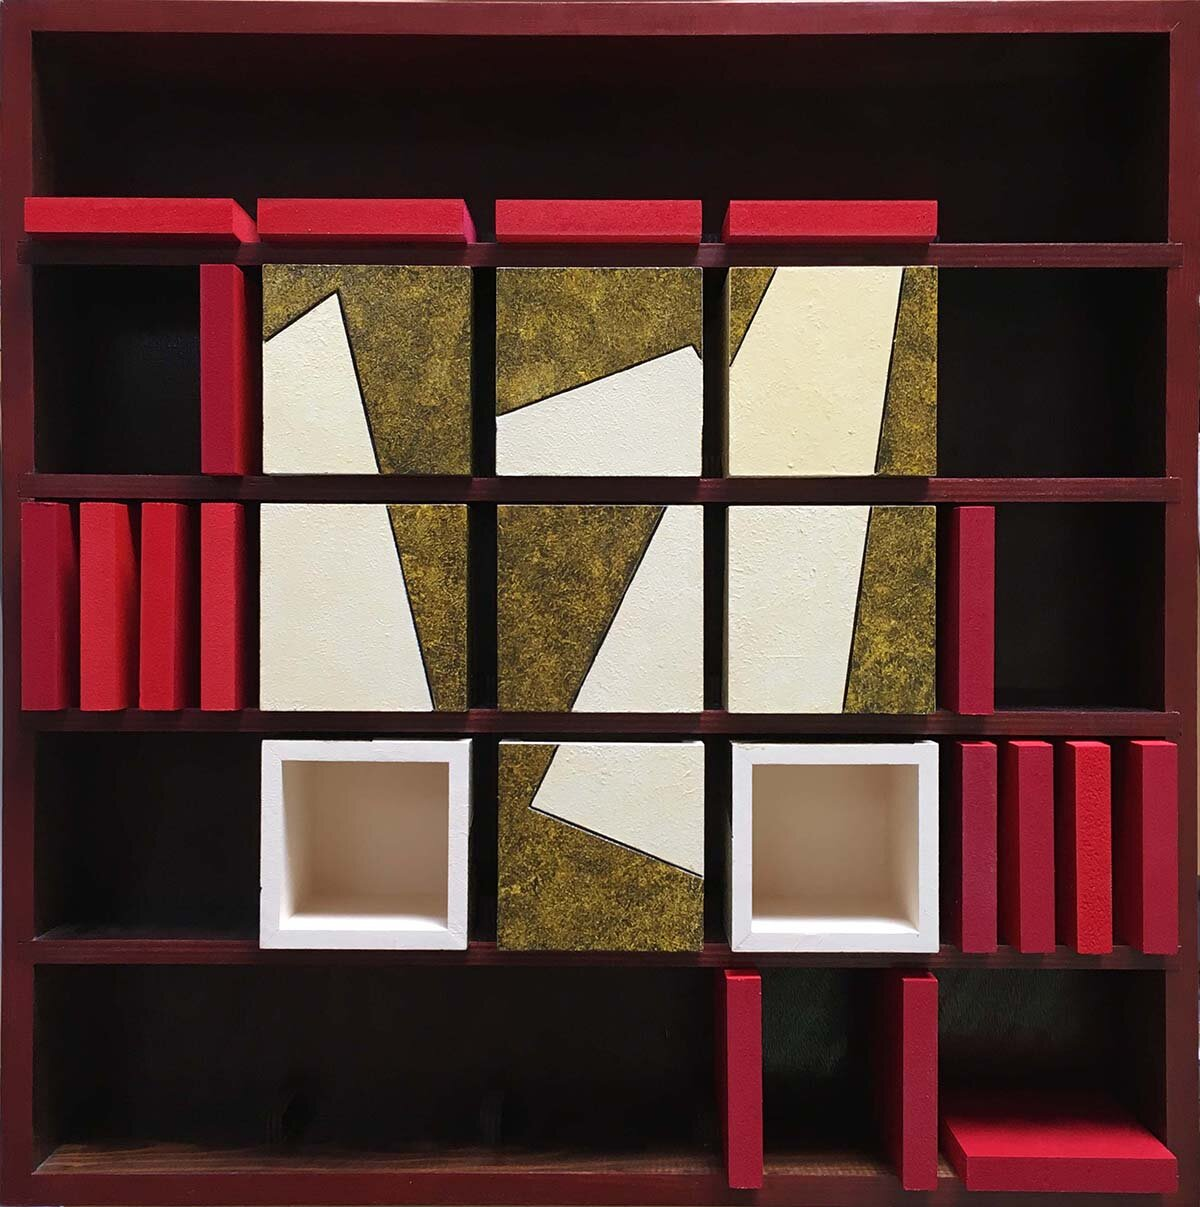 9 open boxes and 17 squares in a 25 position cabinet - size 59 x 59 cm